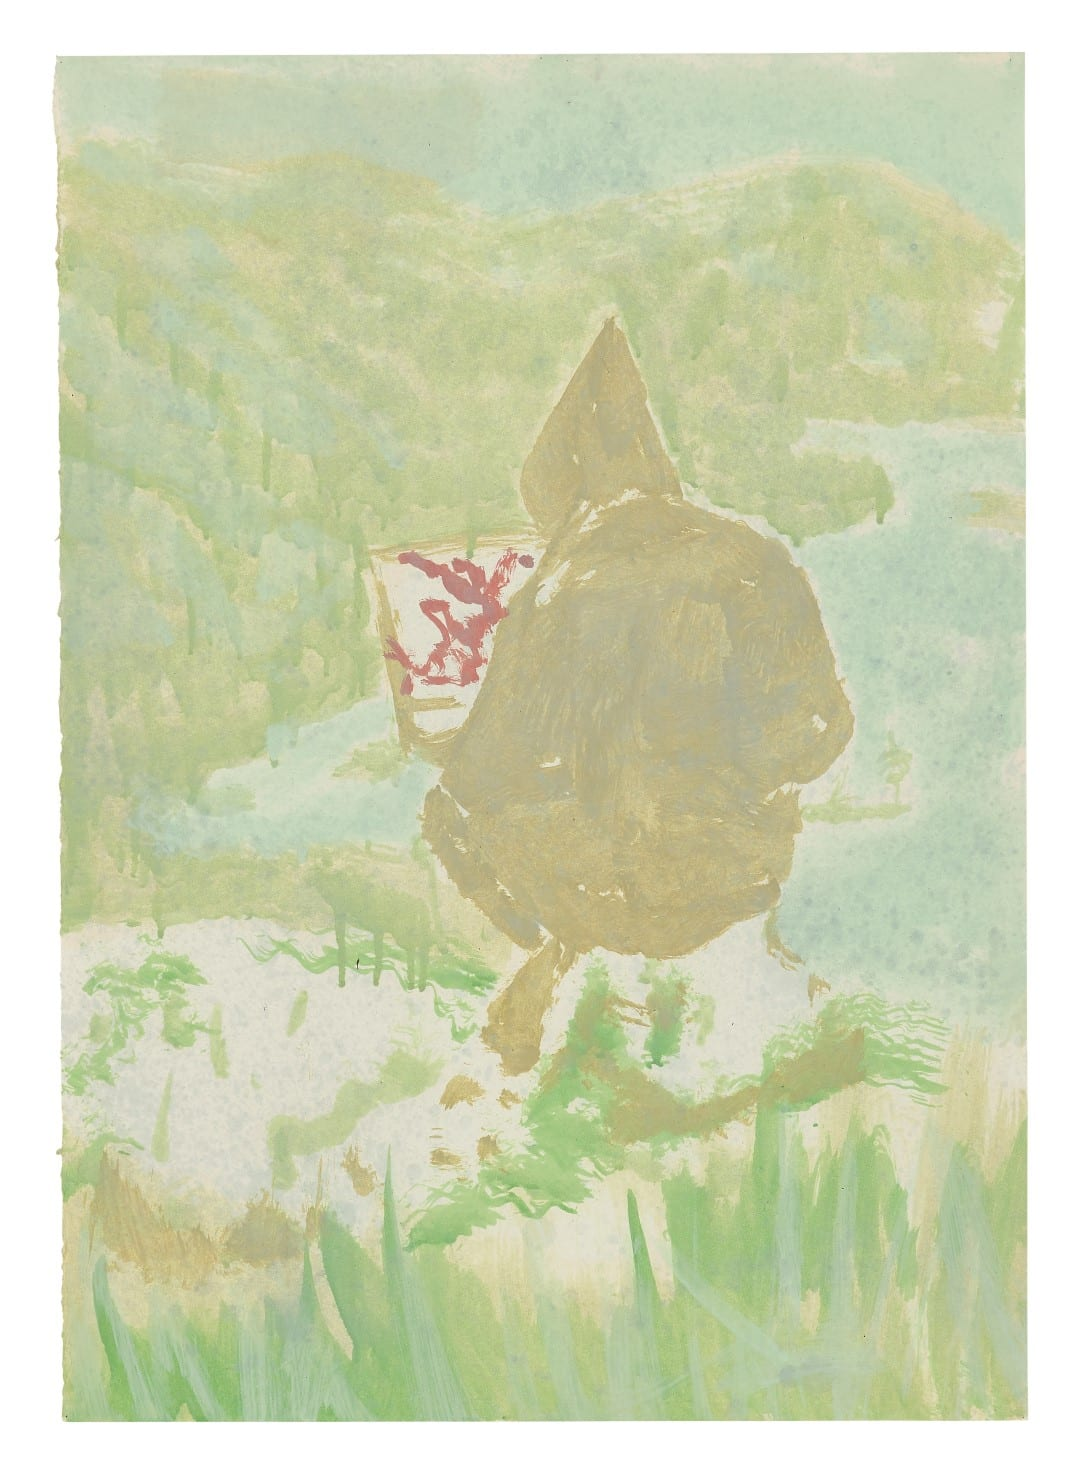 Peter Doig, Figure in Mountain Landscape (The Big...), 1998